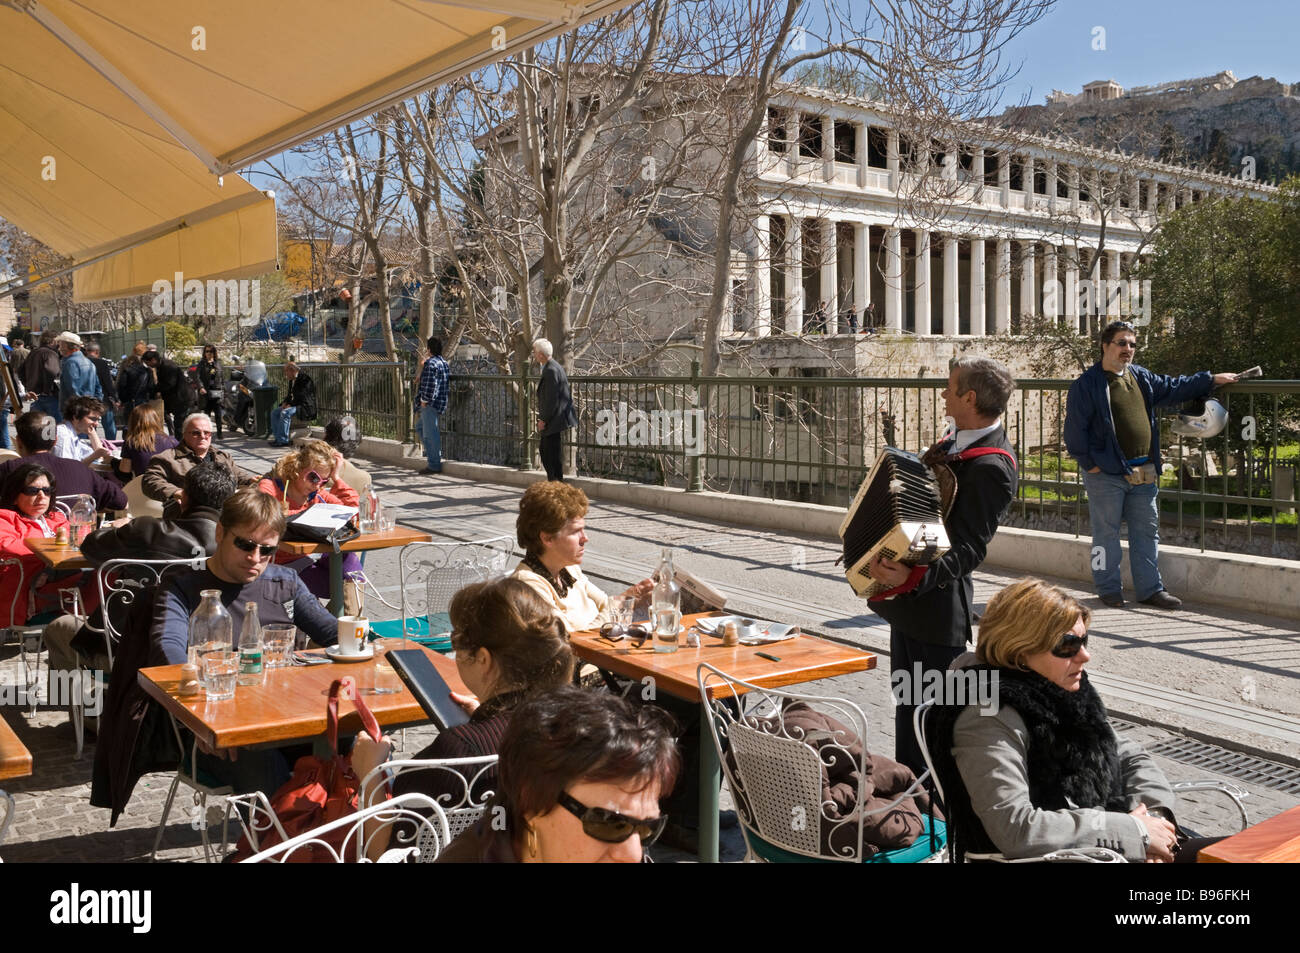 A busker entertains Athenians and tourists at a street cafe on Adrianou street, between Plaka and Monastiraki Central - Stock Image